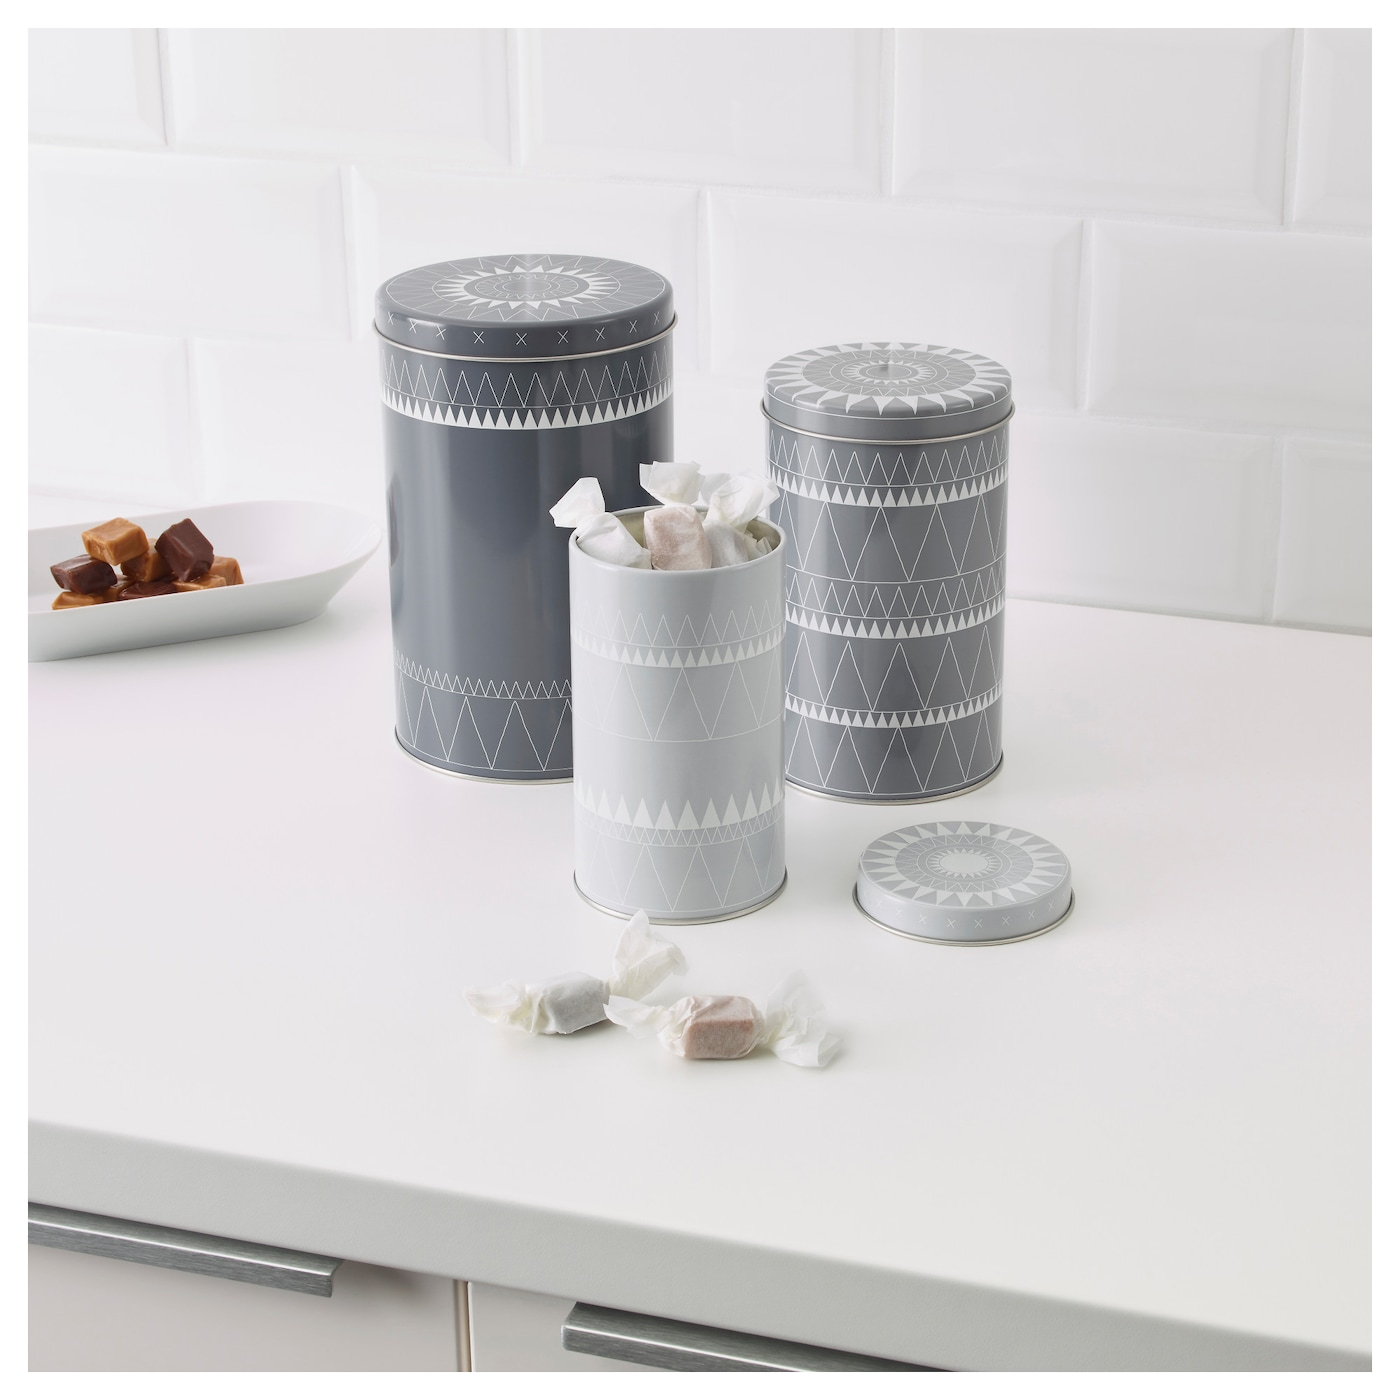 IKEA VINTER 2017 tin with lid, set of 3 Suitable for cakes, biscuits and other dry foodstuffs.